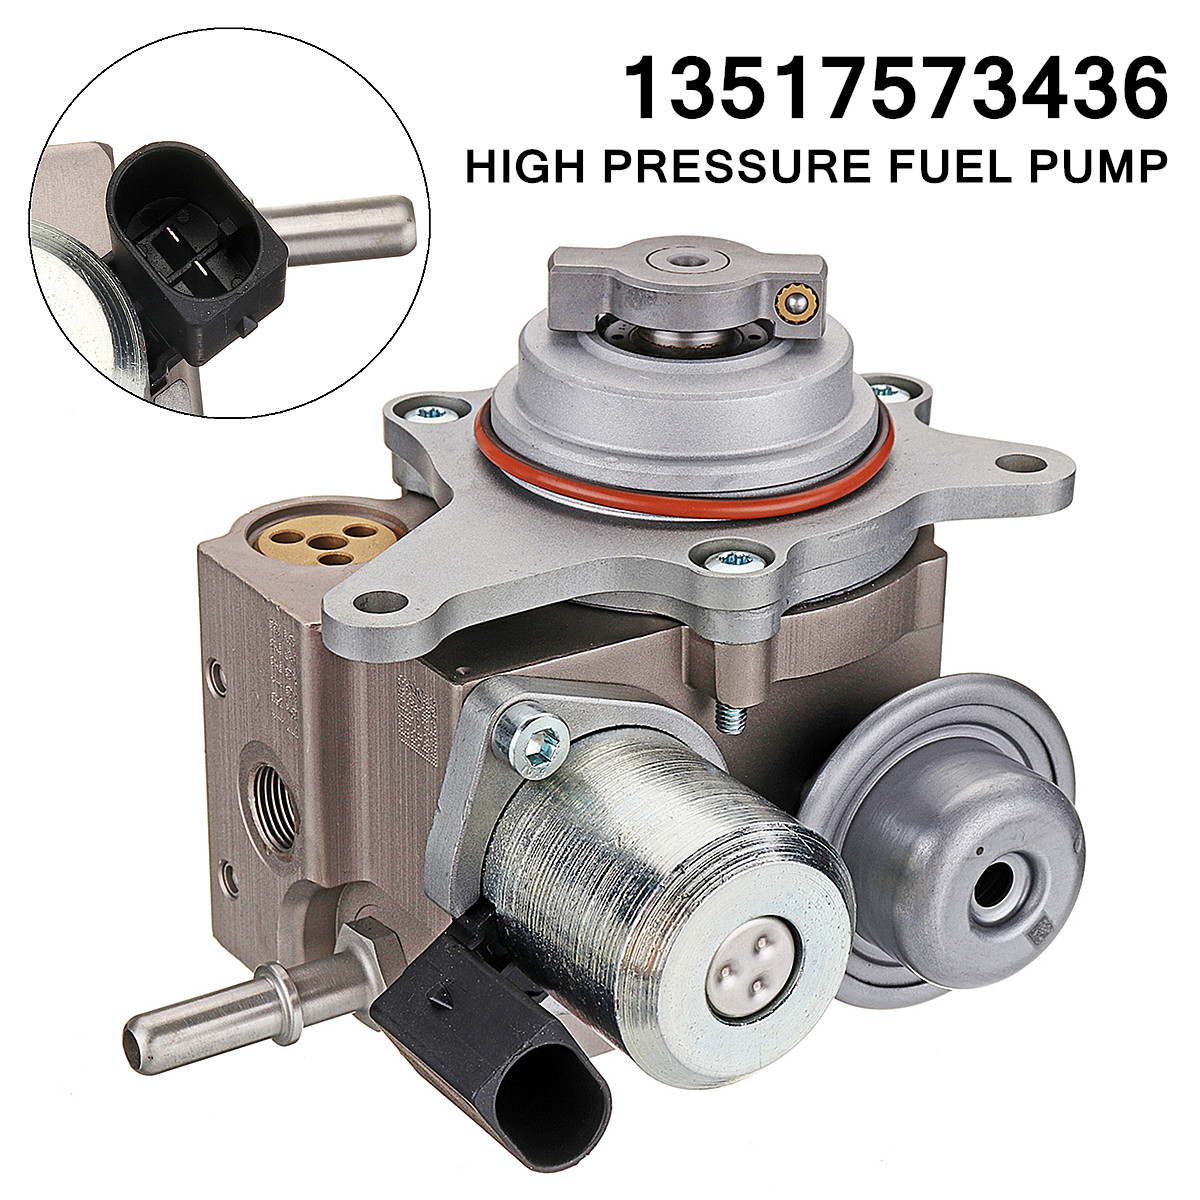 Acouto 13517573436 High Pressure Fuel Pump for MINI Cooper S Turbocharged R55 R56 R57 R58 R59